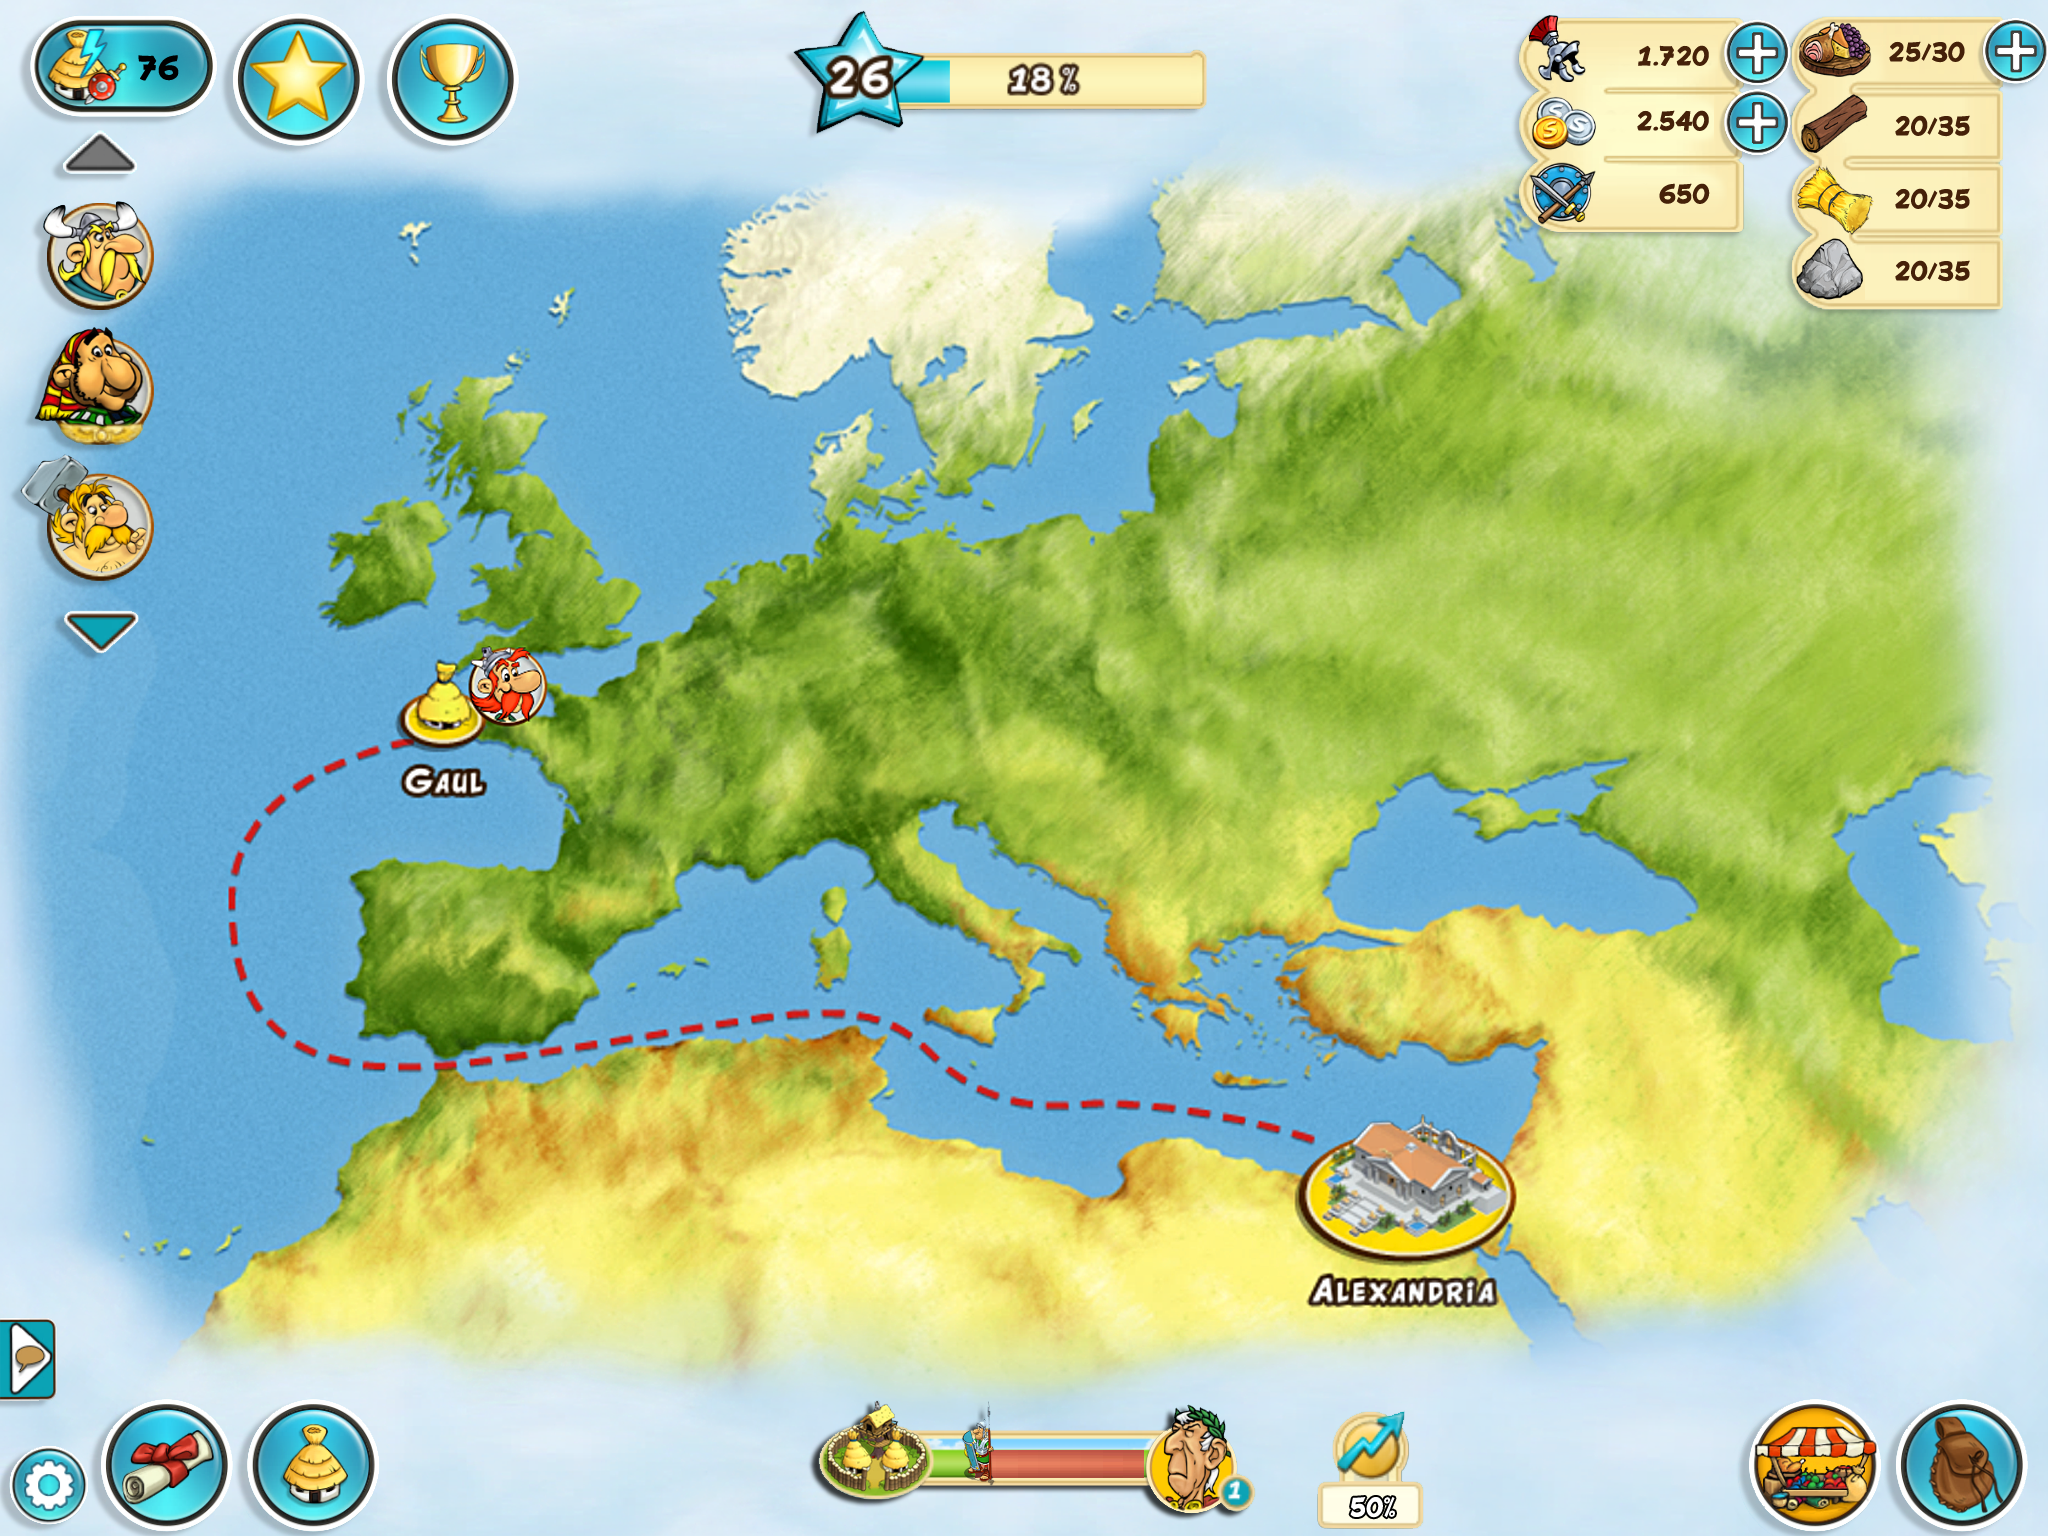 Gaul World Map.Asterix And Friends Launches On Ios And Android Mxdwn Games